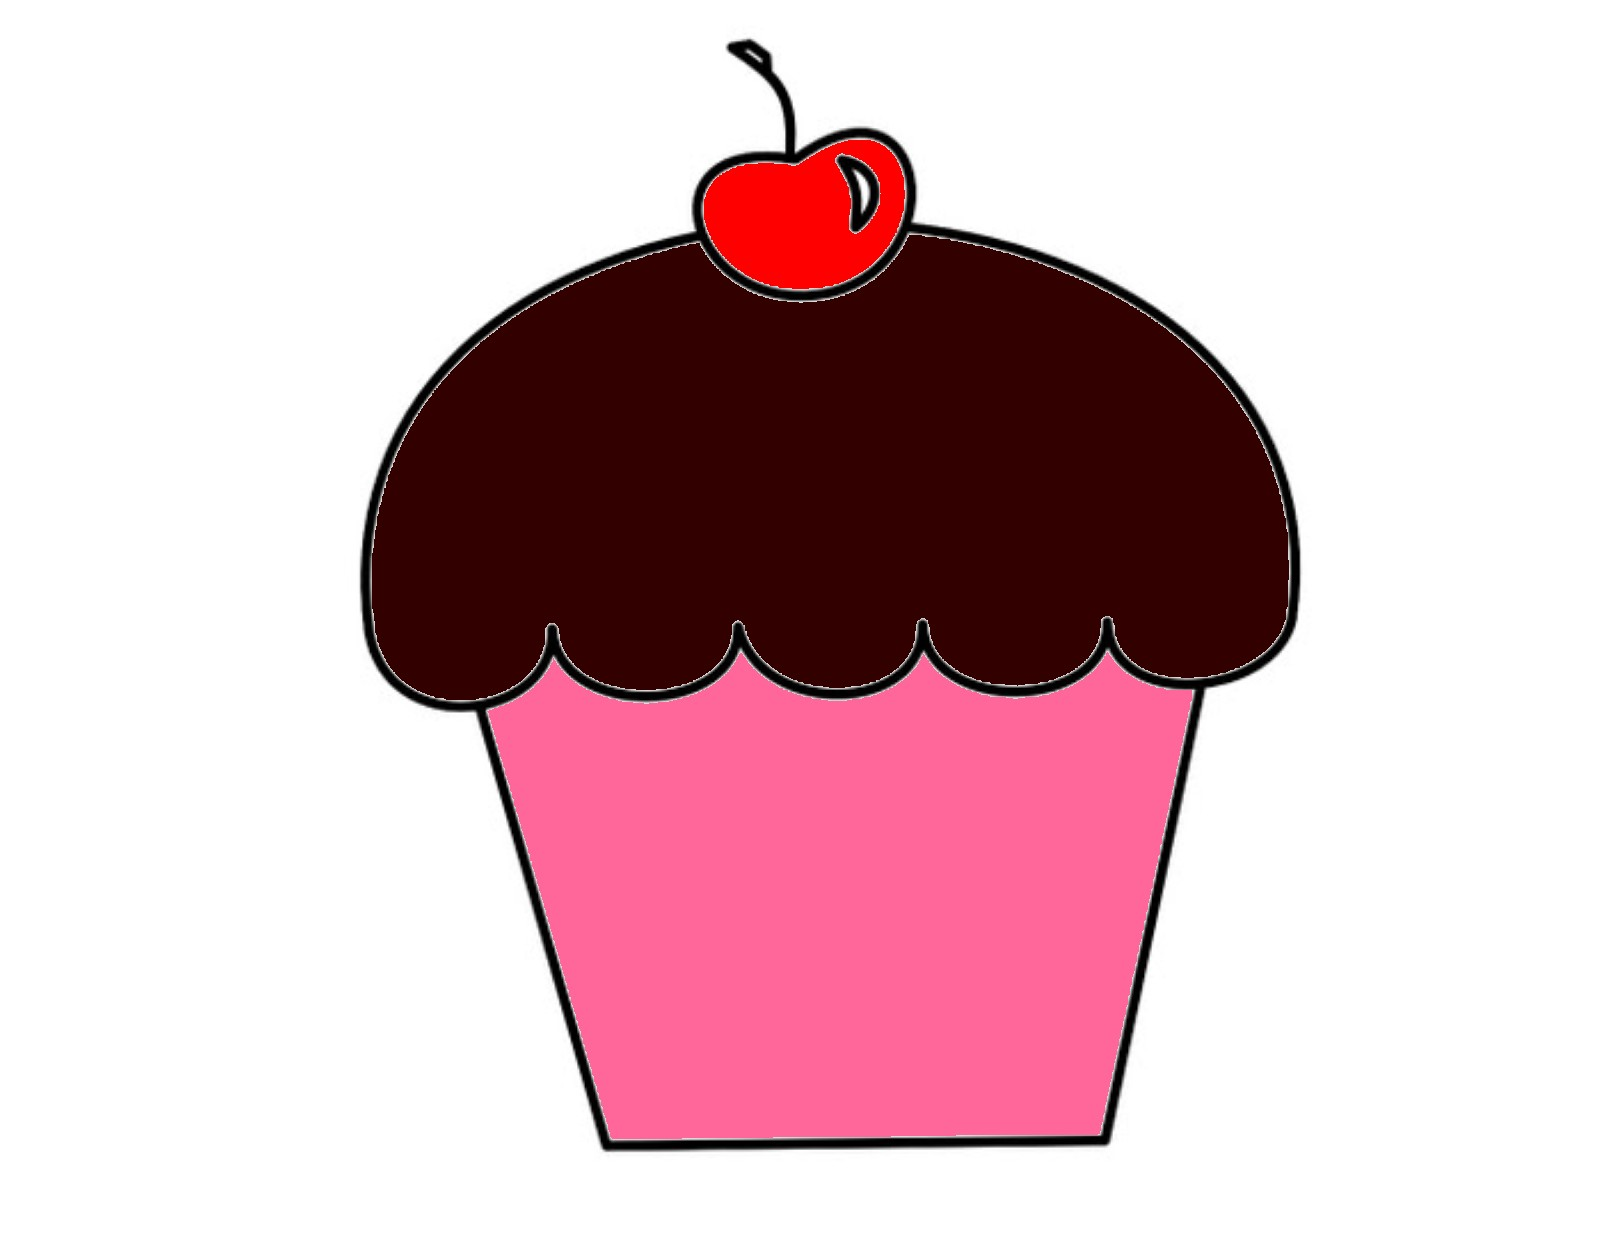 Cartoon Cupcake Pictures - ClipArt Best